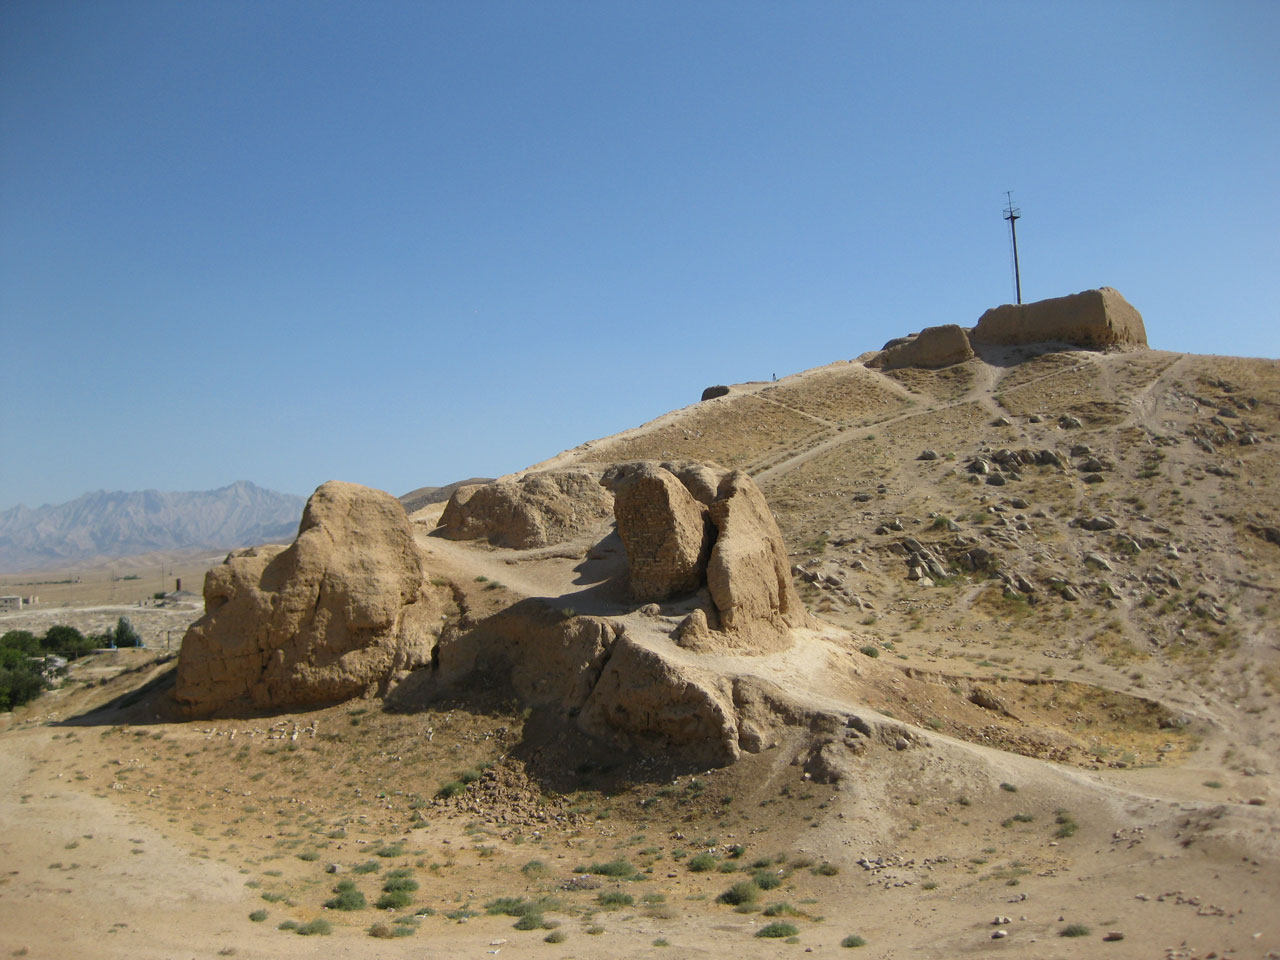 Alexander the Great's fortress in Nurata, Uzbekistan